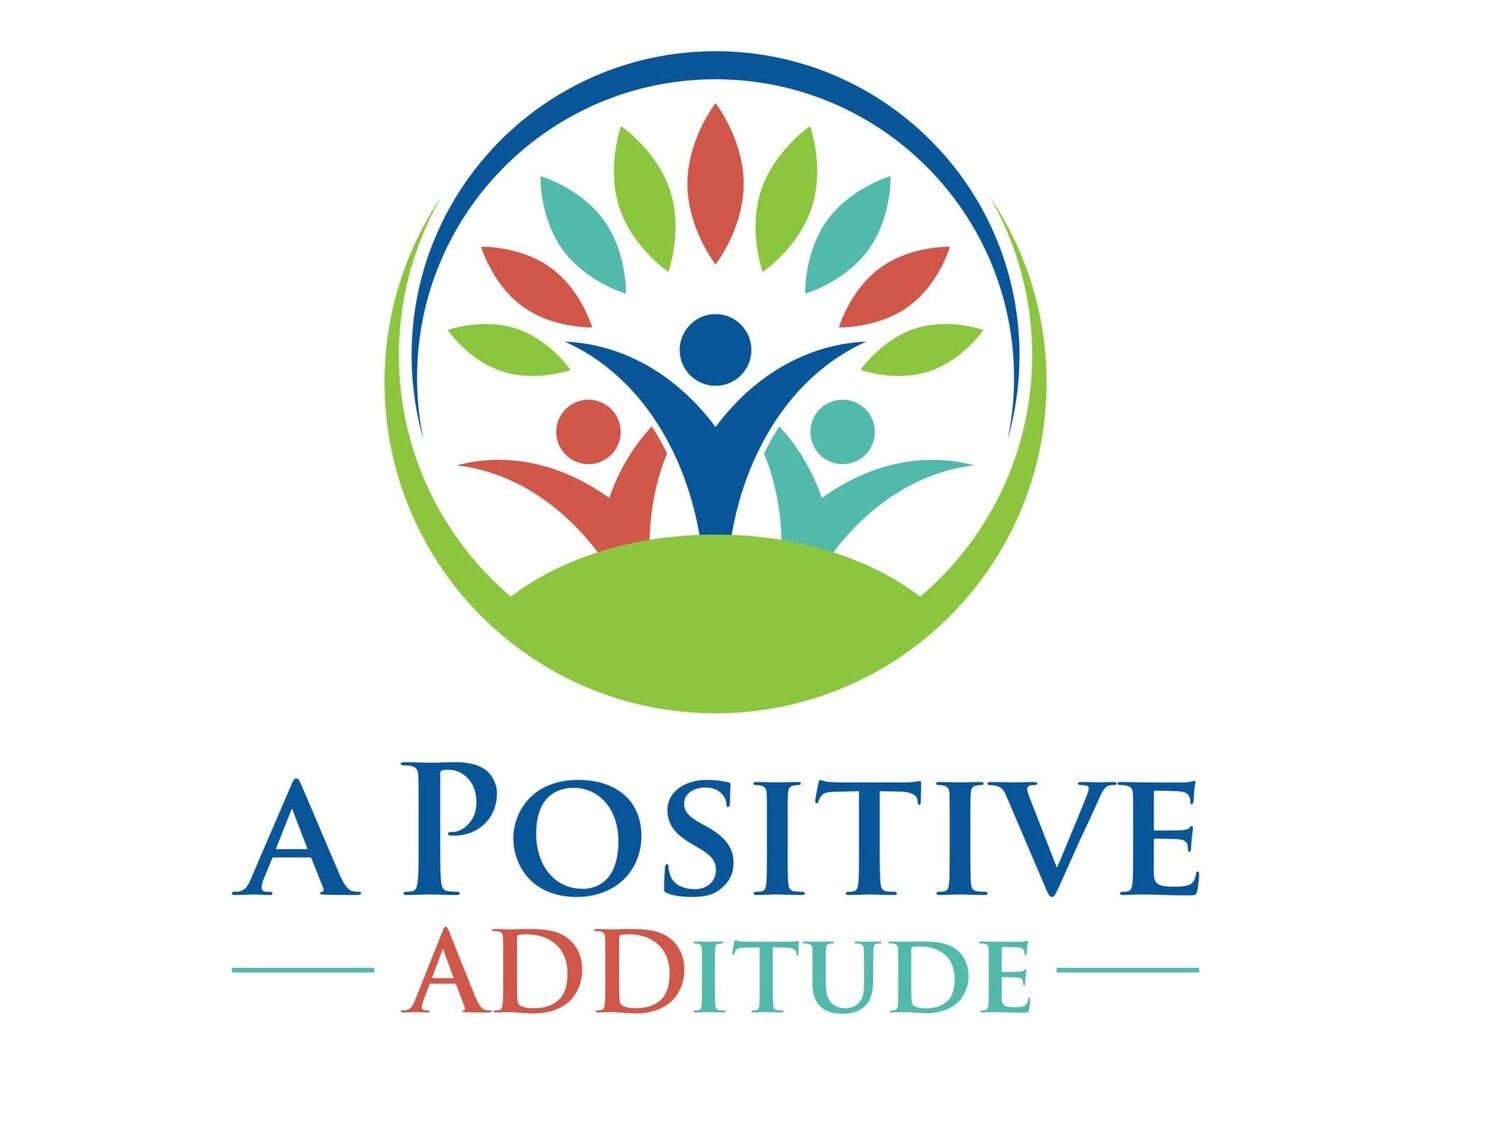 A Positive ADDitude